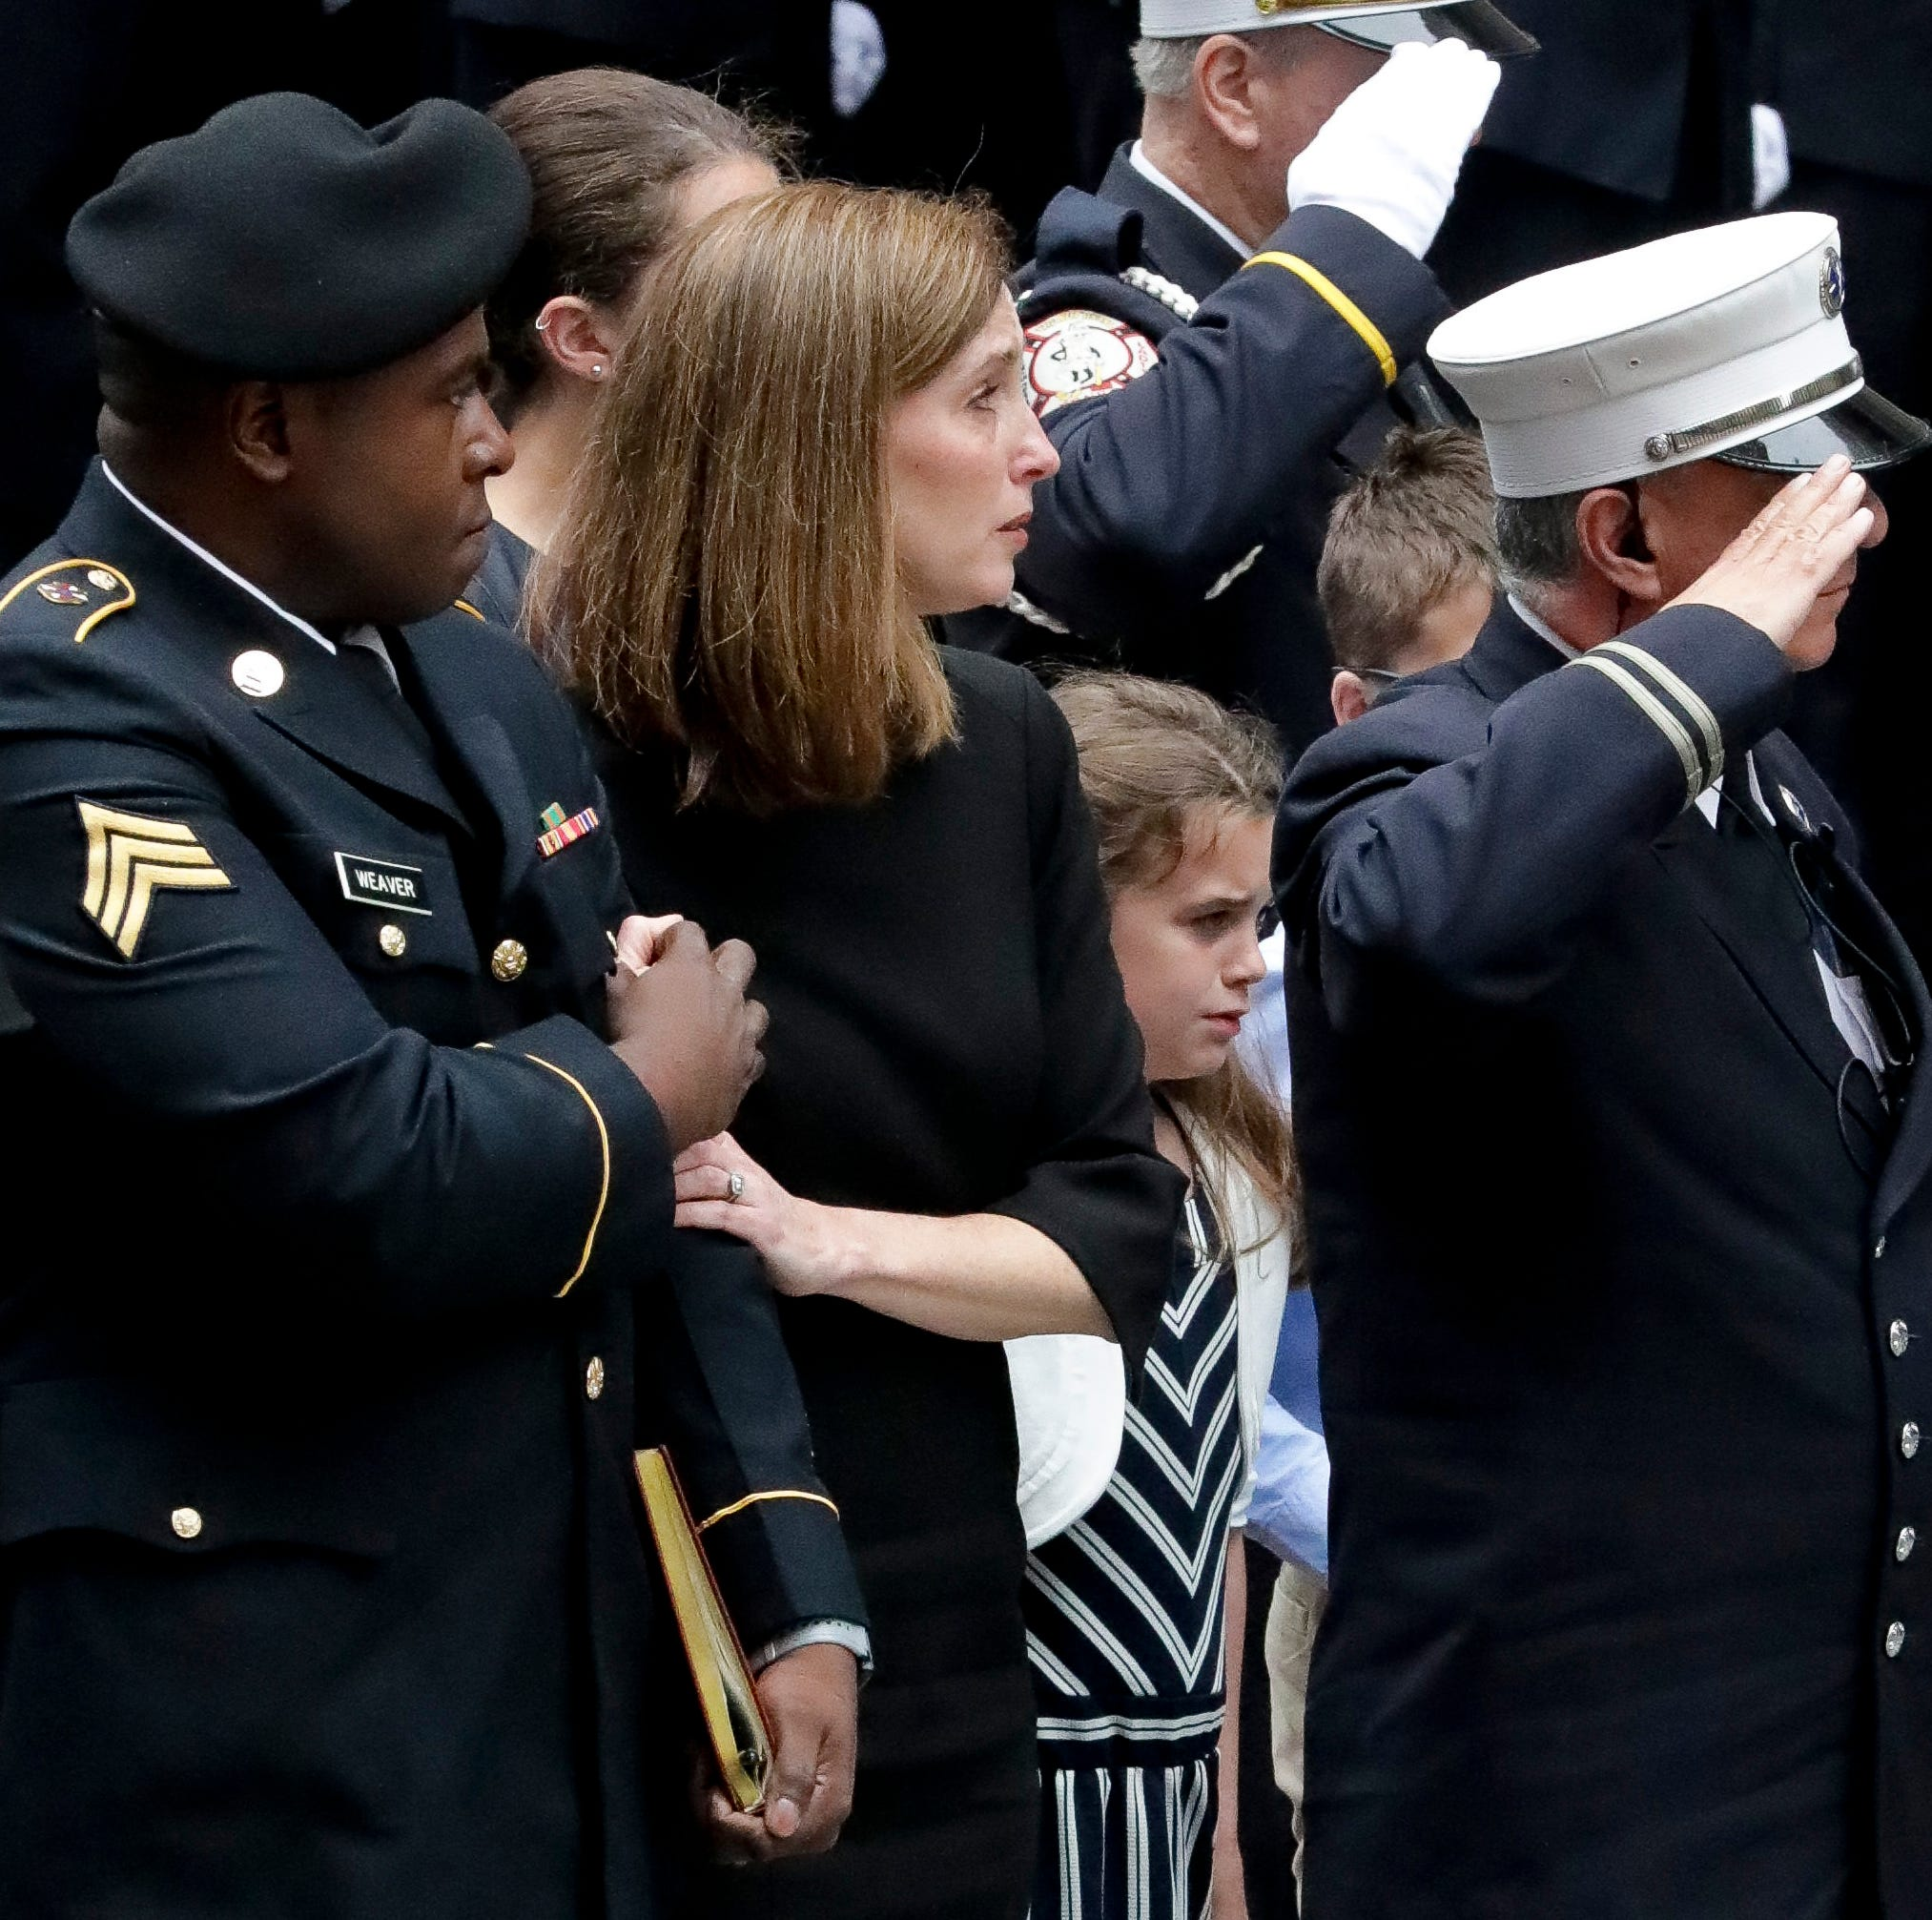 Shannon Slutman, second from left, holds onto a Marine officer as the casket for her husband, U.S. Marine Corps Staff Sergeant and FDNY Firefighter Christopher Slutman, arrives for his funeral service at St. Thomas Episcopal Church, Friday April 26, 2019, in New York. The father of three died April 8 near Bagram Airfield U.S military base in Afghanistan. (AP Photo/Bebeto Matthews)